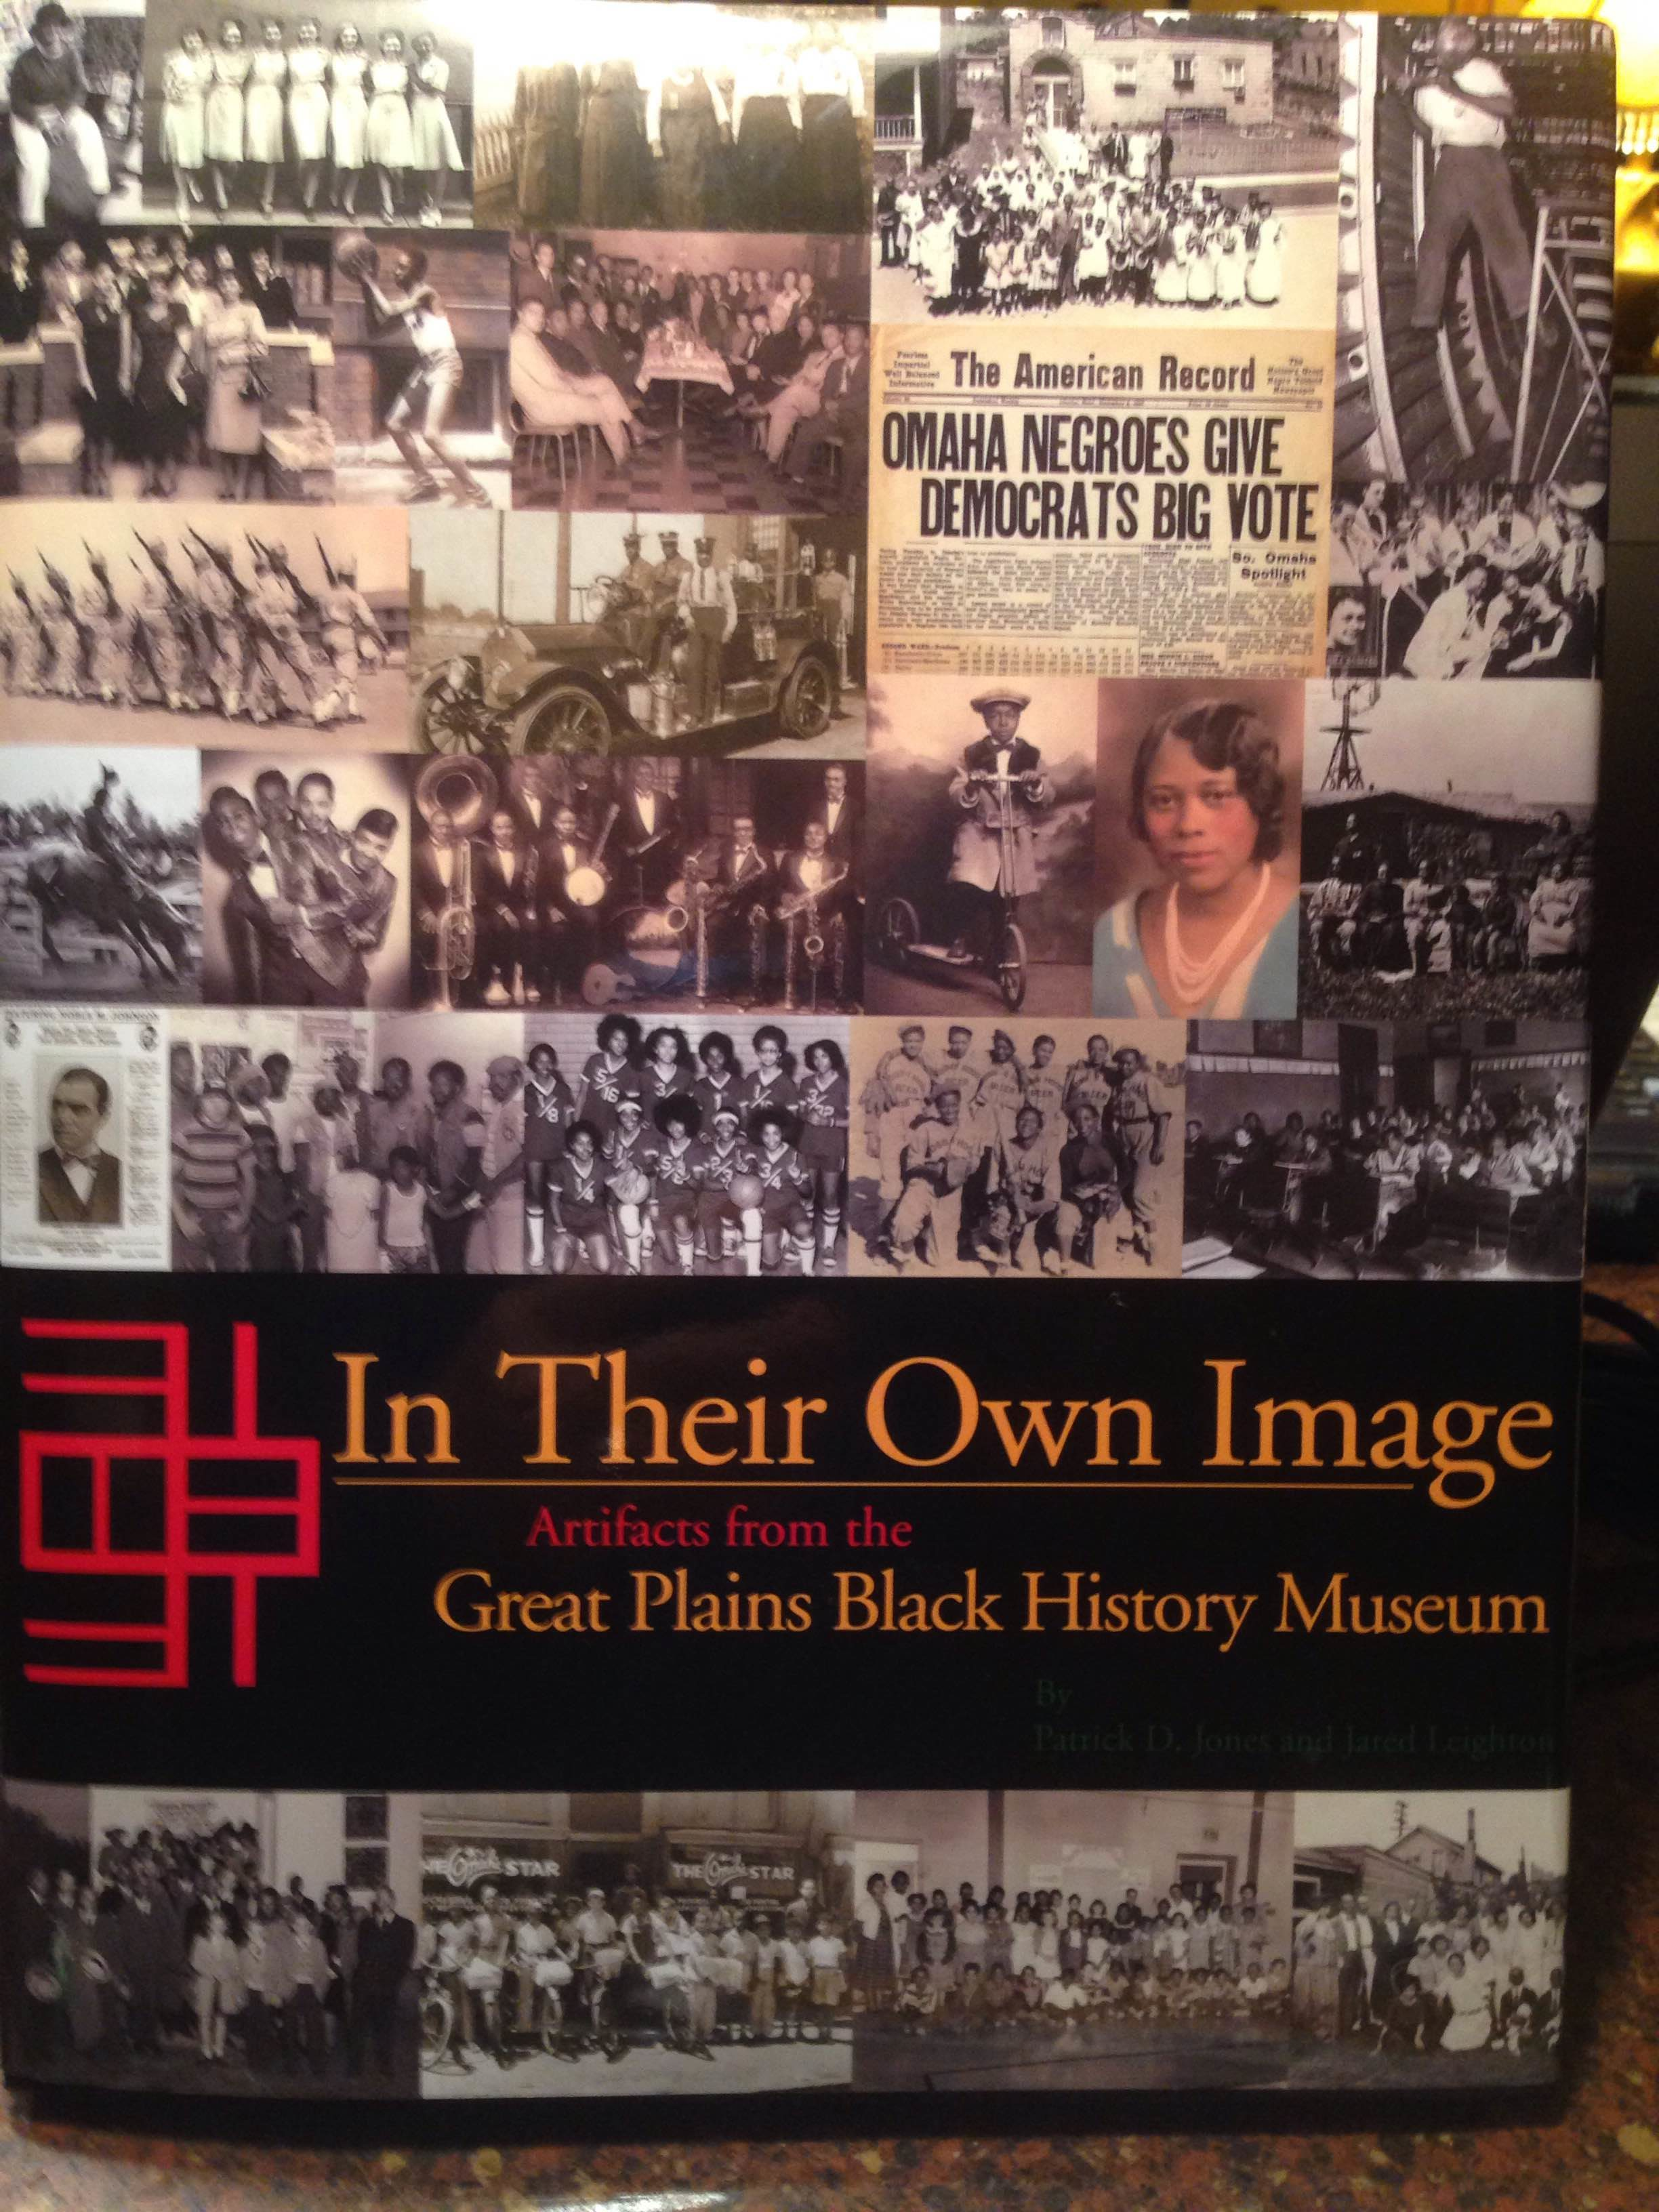 In Their Own Image: Artifacts from the Great Plains Black History Museum